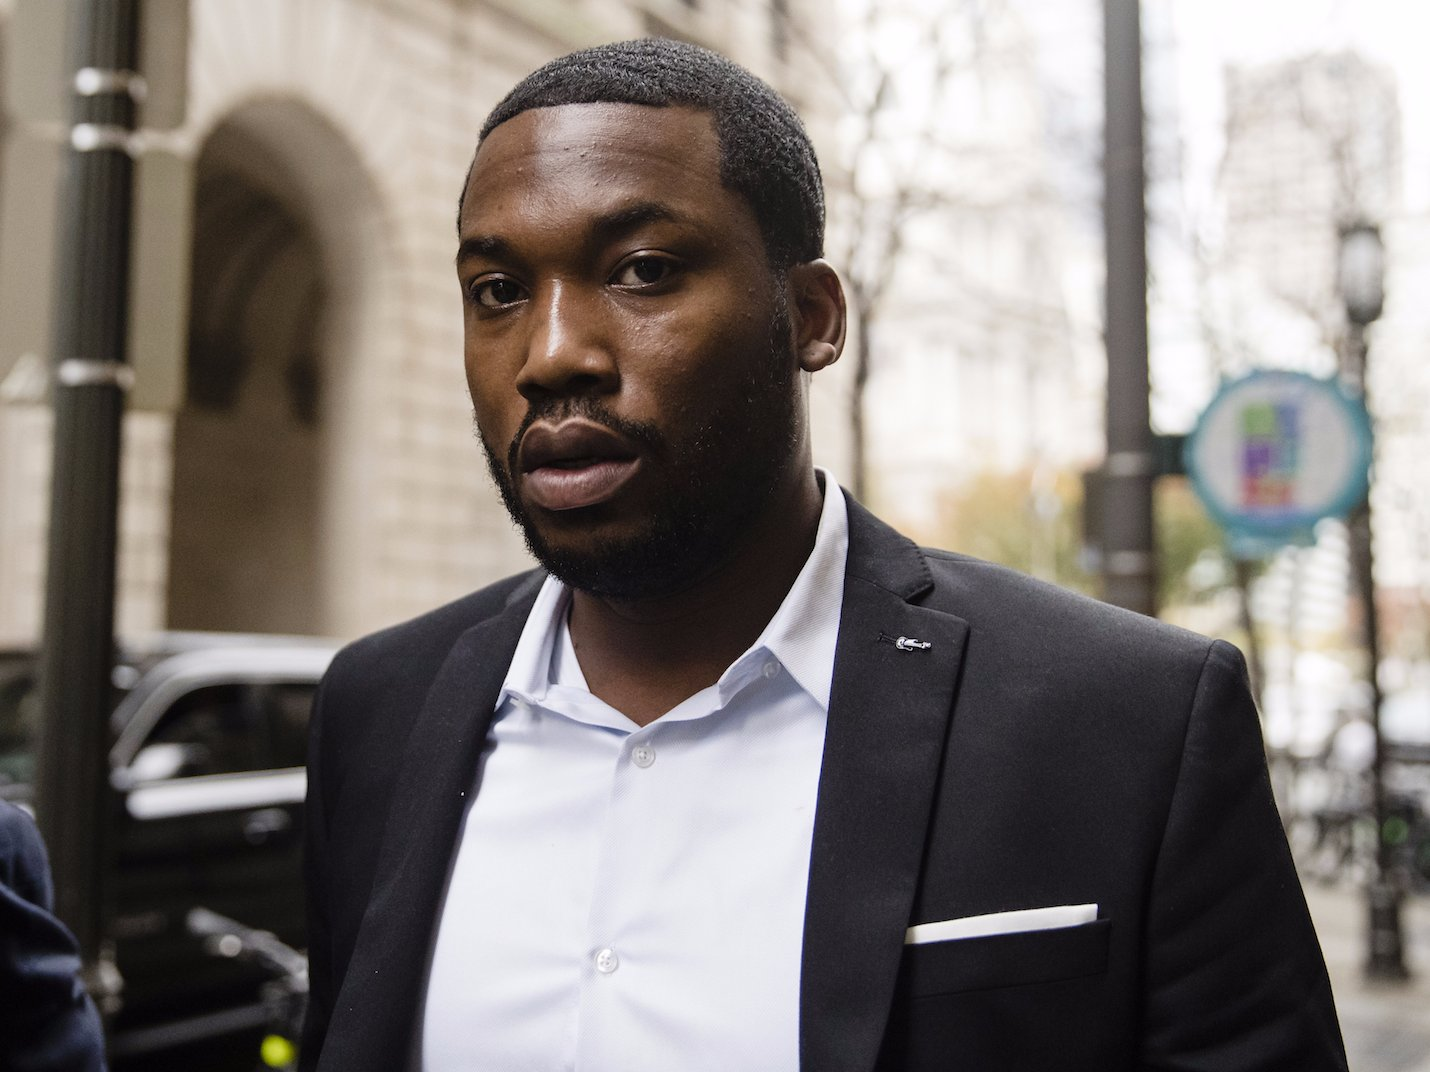 Meek Mill Said He Battled Percocet Addiction, Gets New Mugshot